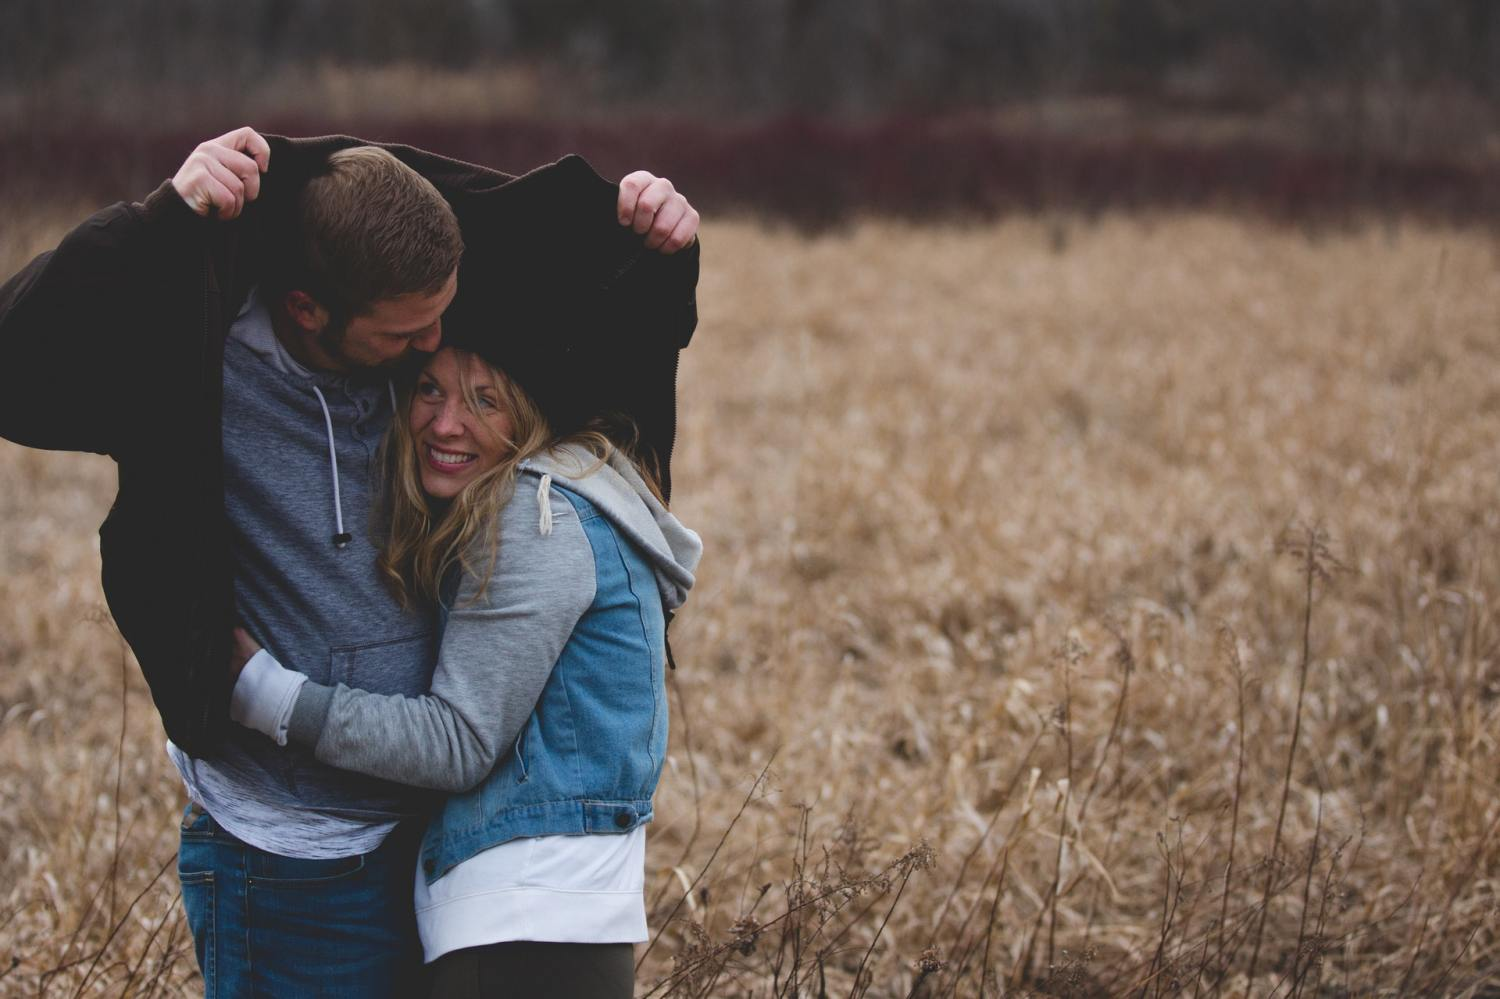 12 Sure Signs He Wants To Marry You – Here's What To Look Out For